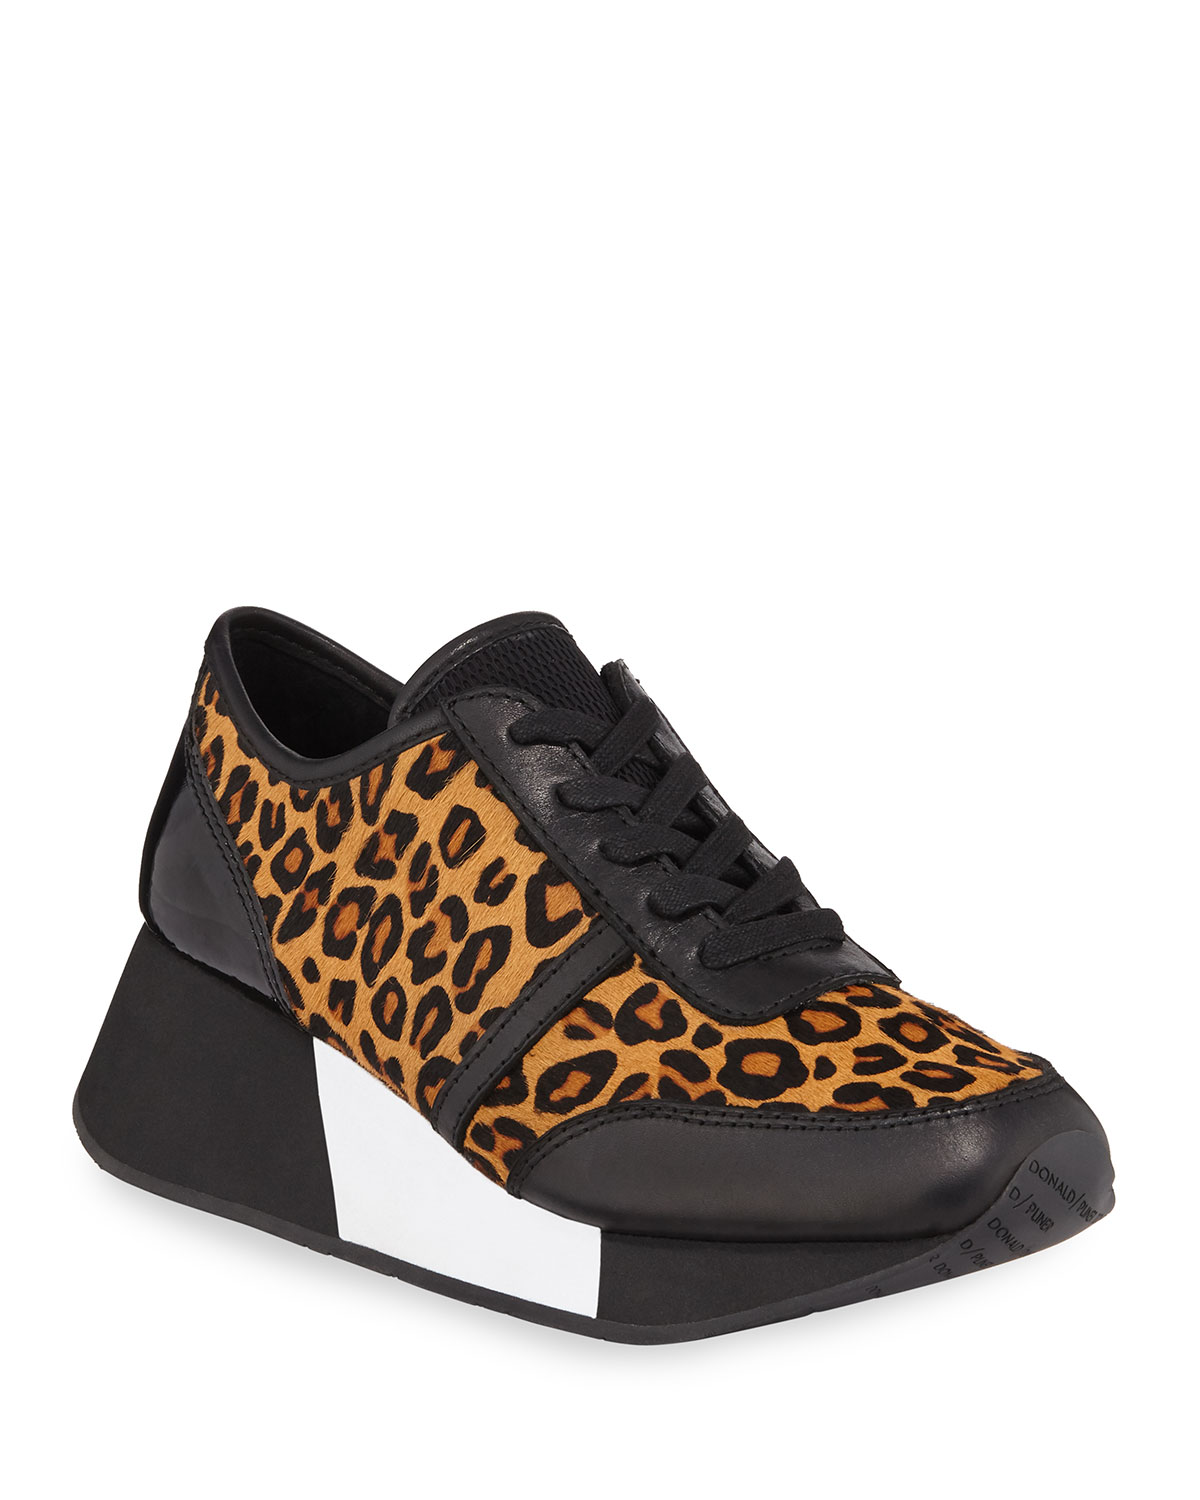 Payce Cheetah-Print Calf Hair Wedge Sneakers